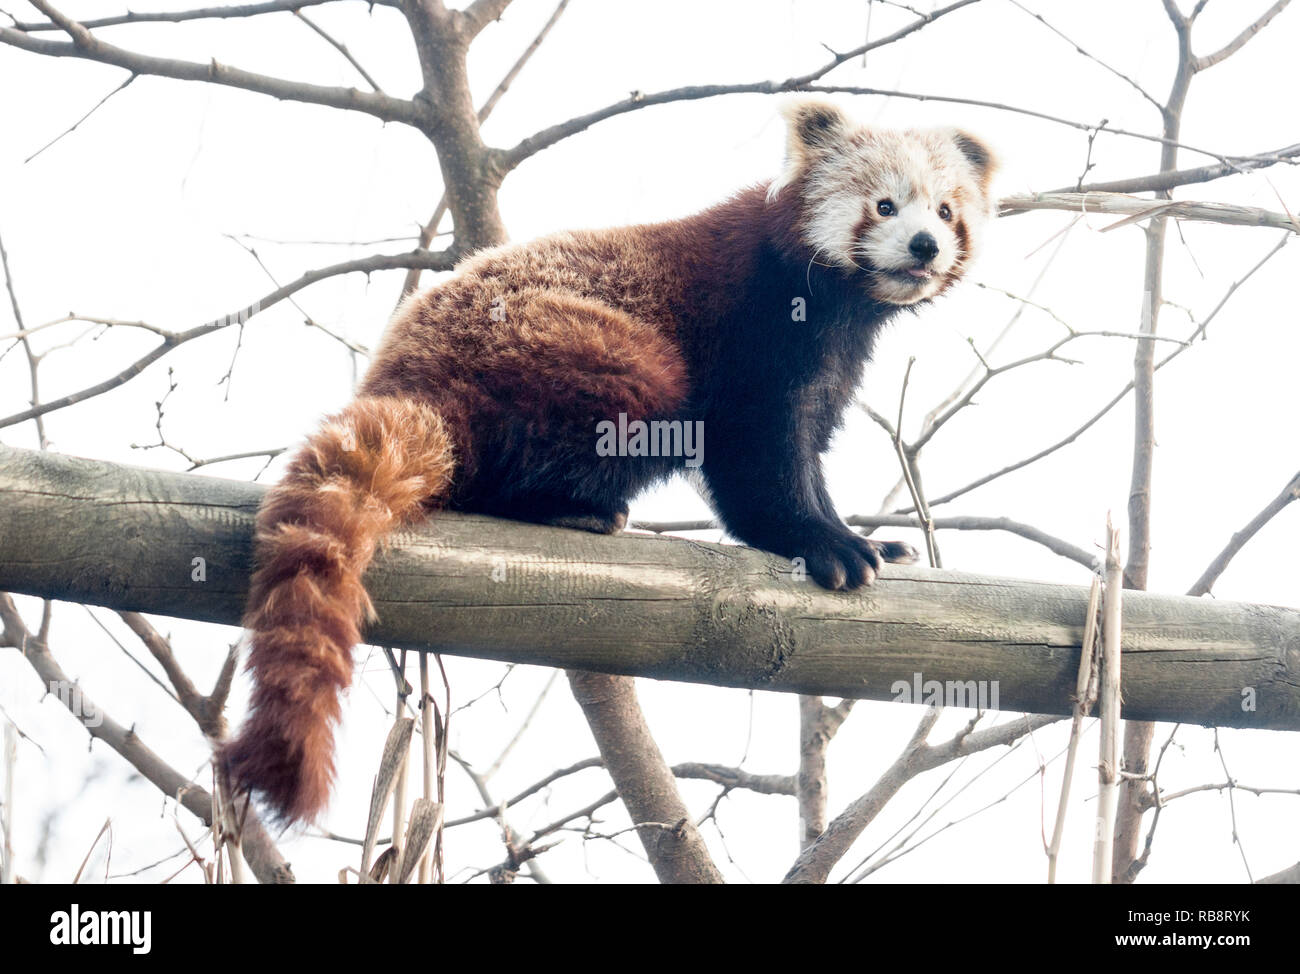 Himalayan Red Panda (Ailurus fulgens).Adult in a zoo in Southwest France. - Stock Image